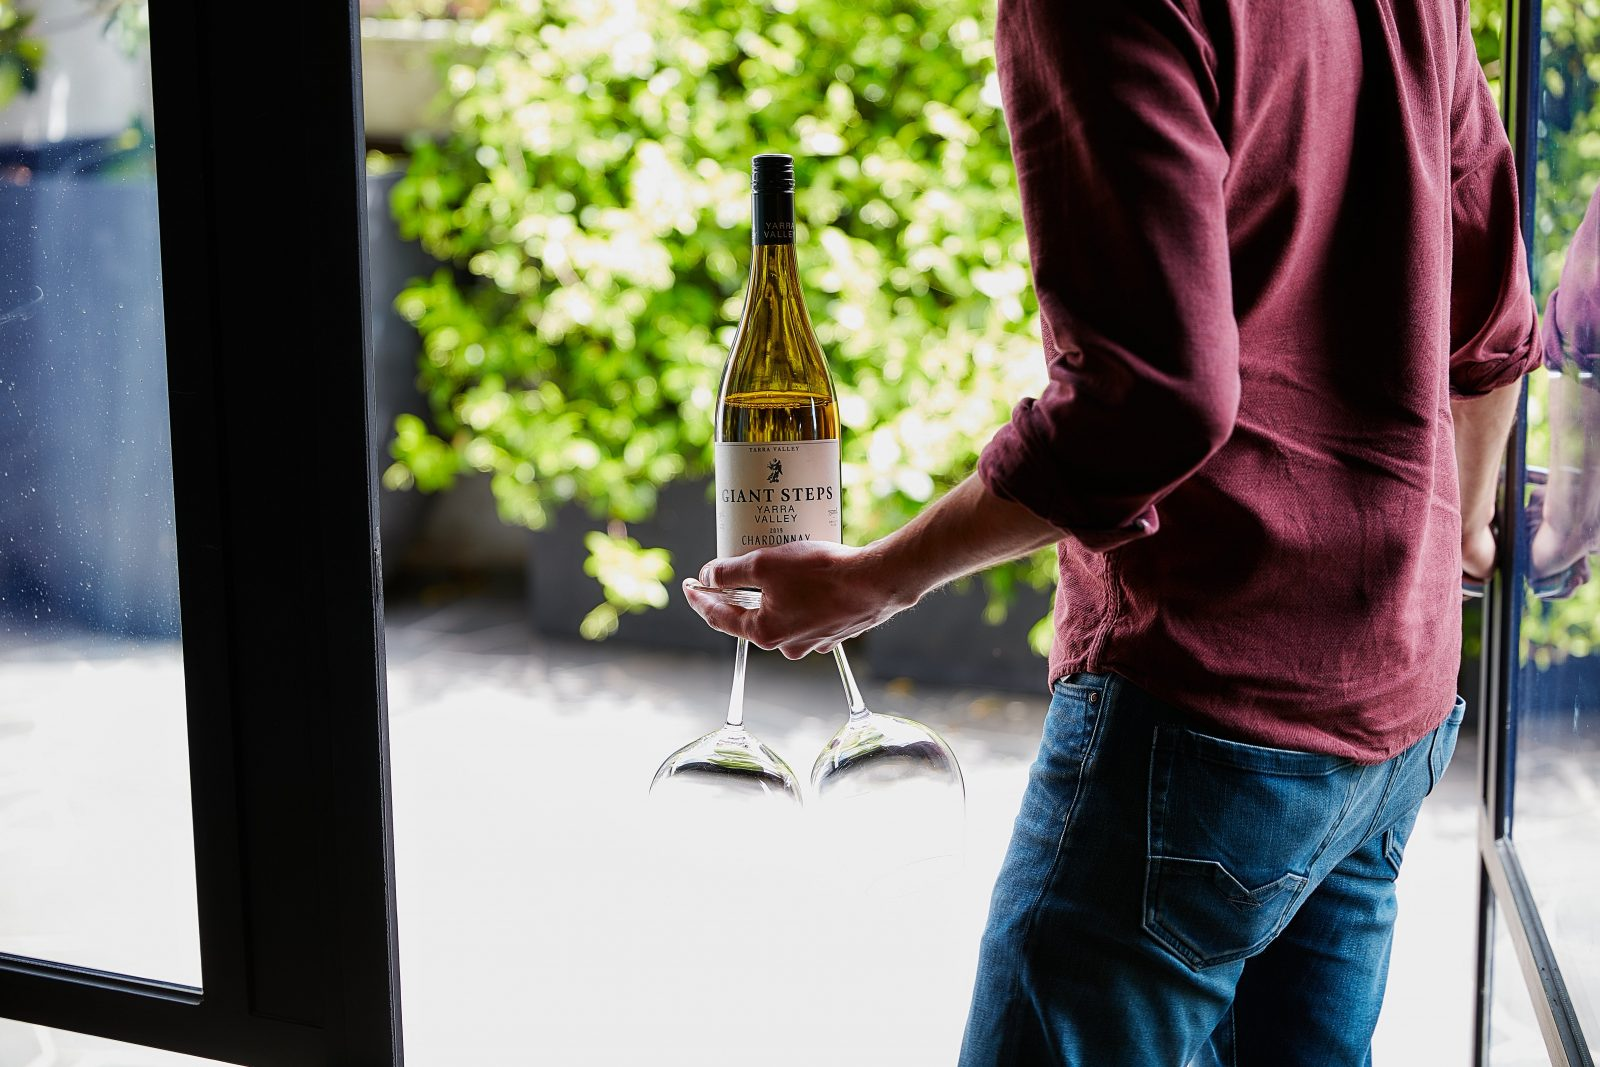 A Giant Steps Chardonnay being tasted in the courtyard.